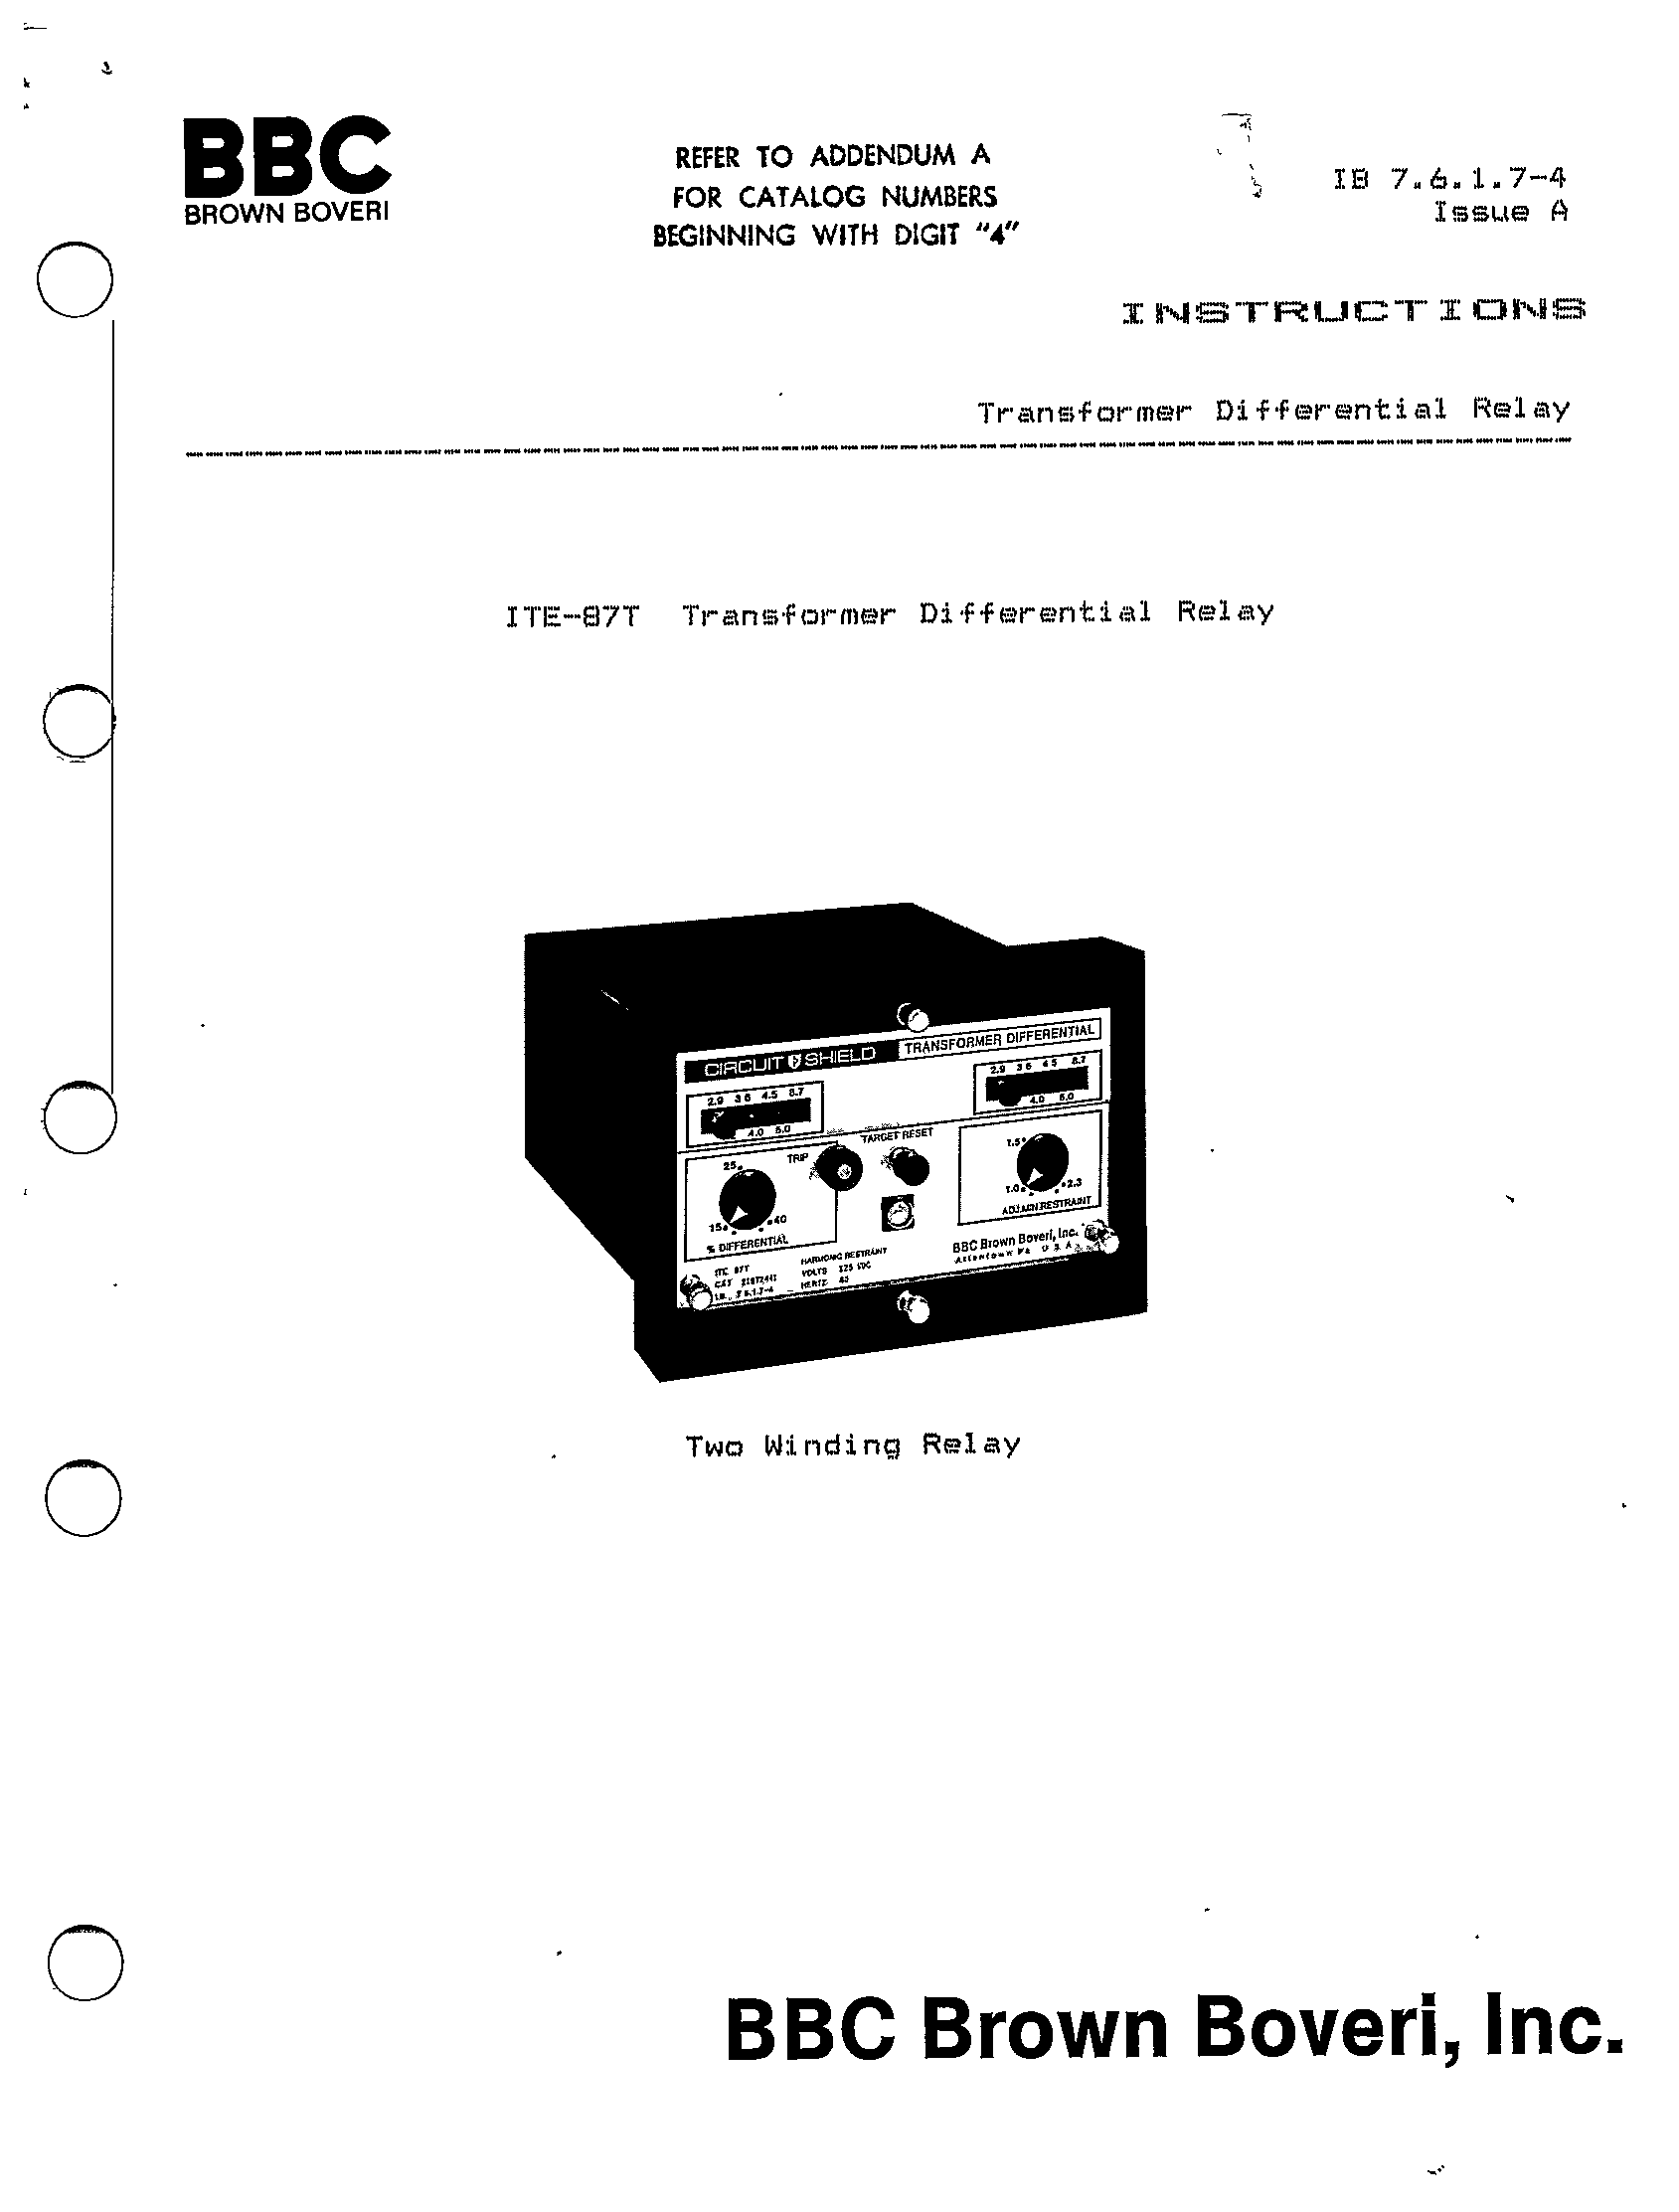 Ite 87t Transformer Differential Relay Manual